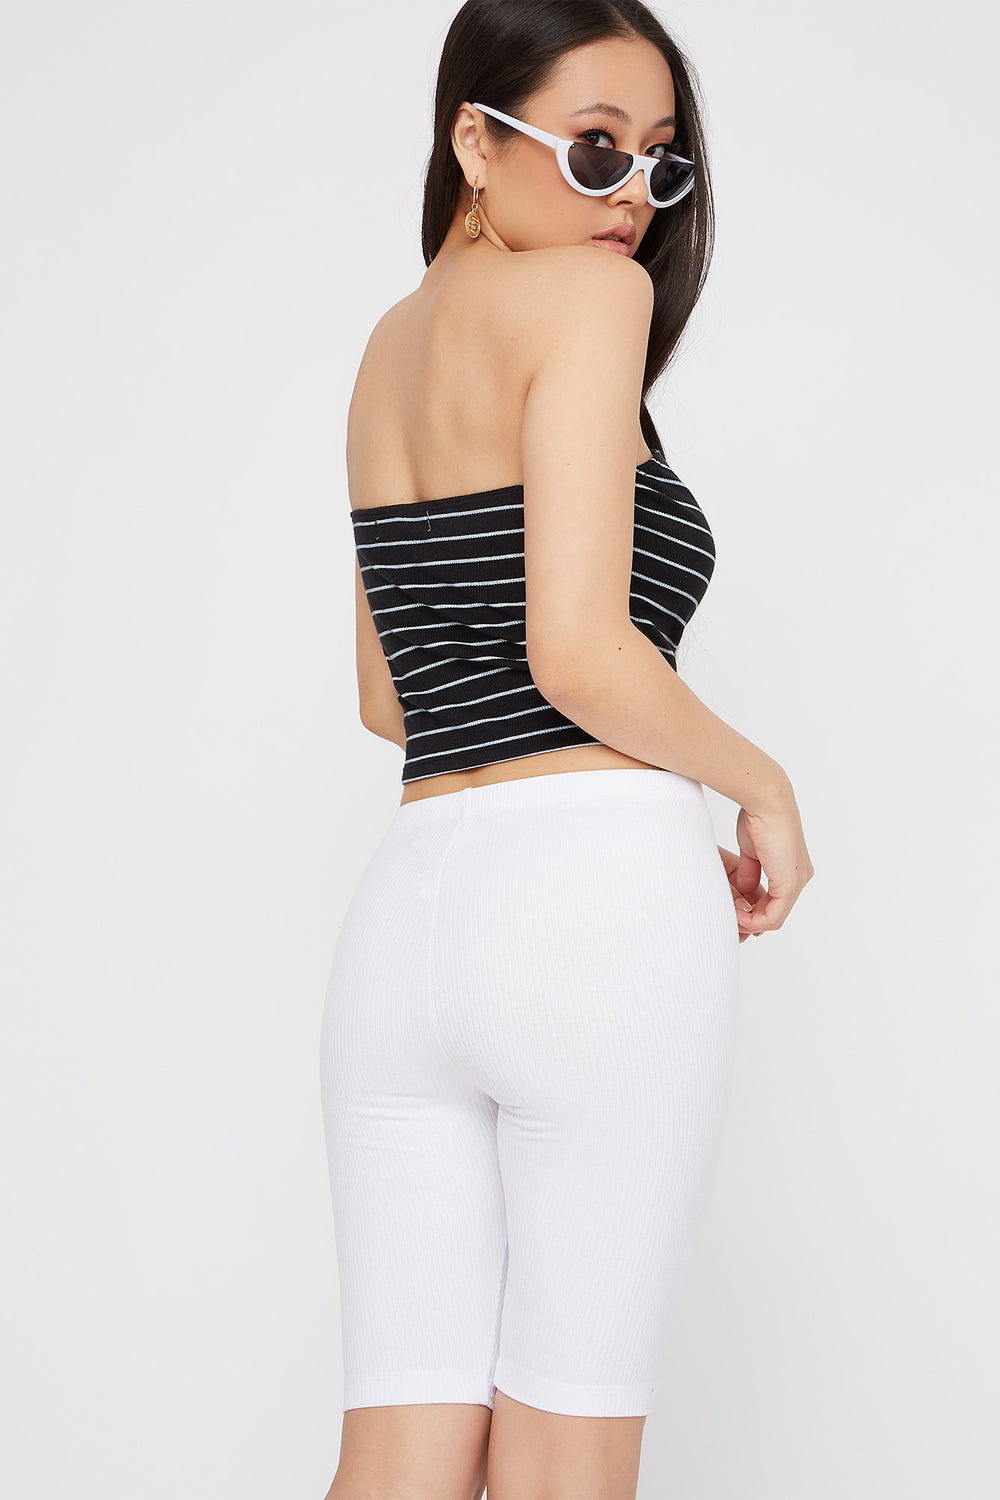 Striped Ribbed Cropped Tube Top Black with White